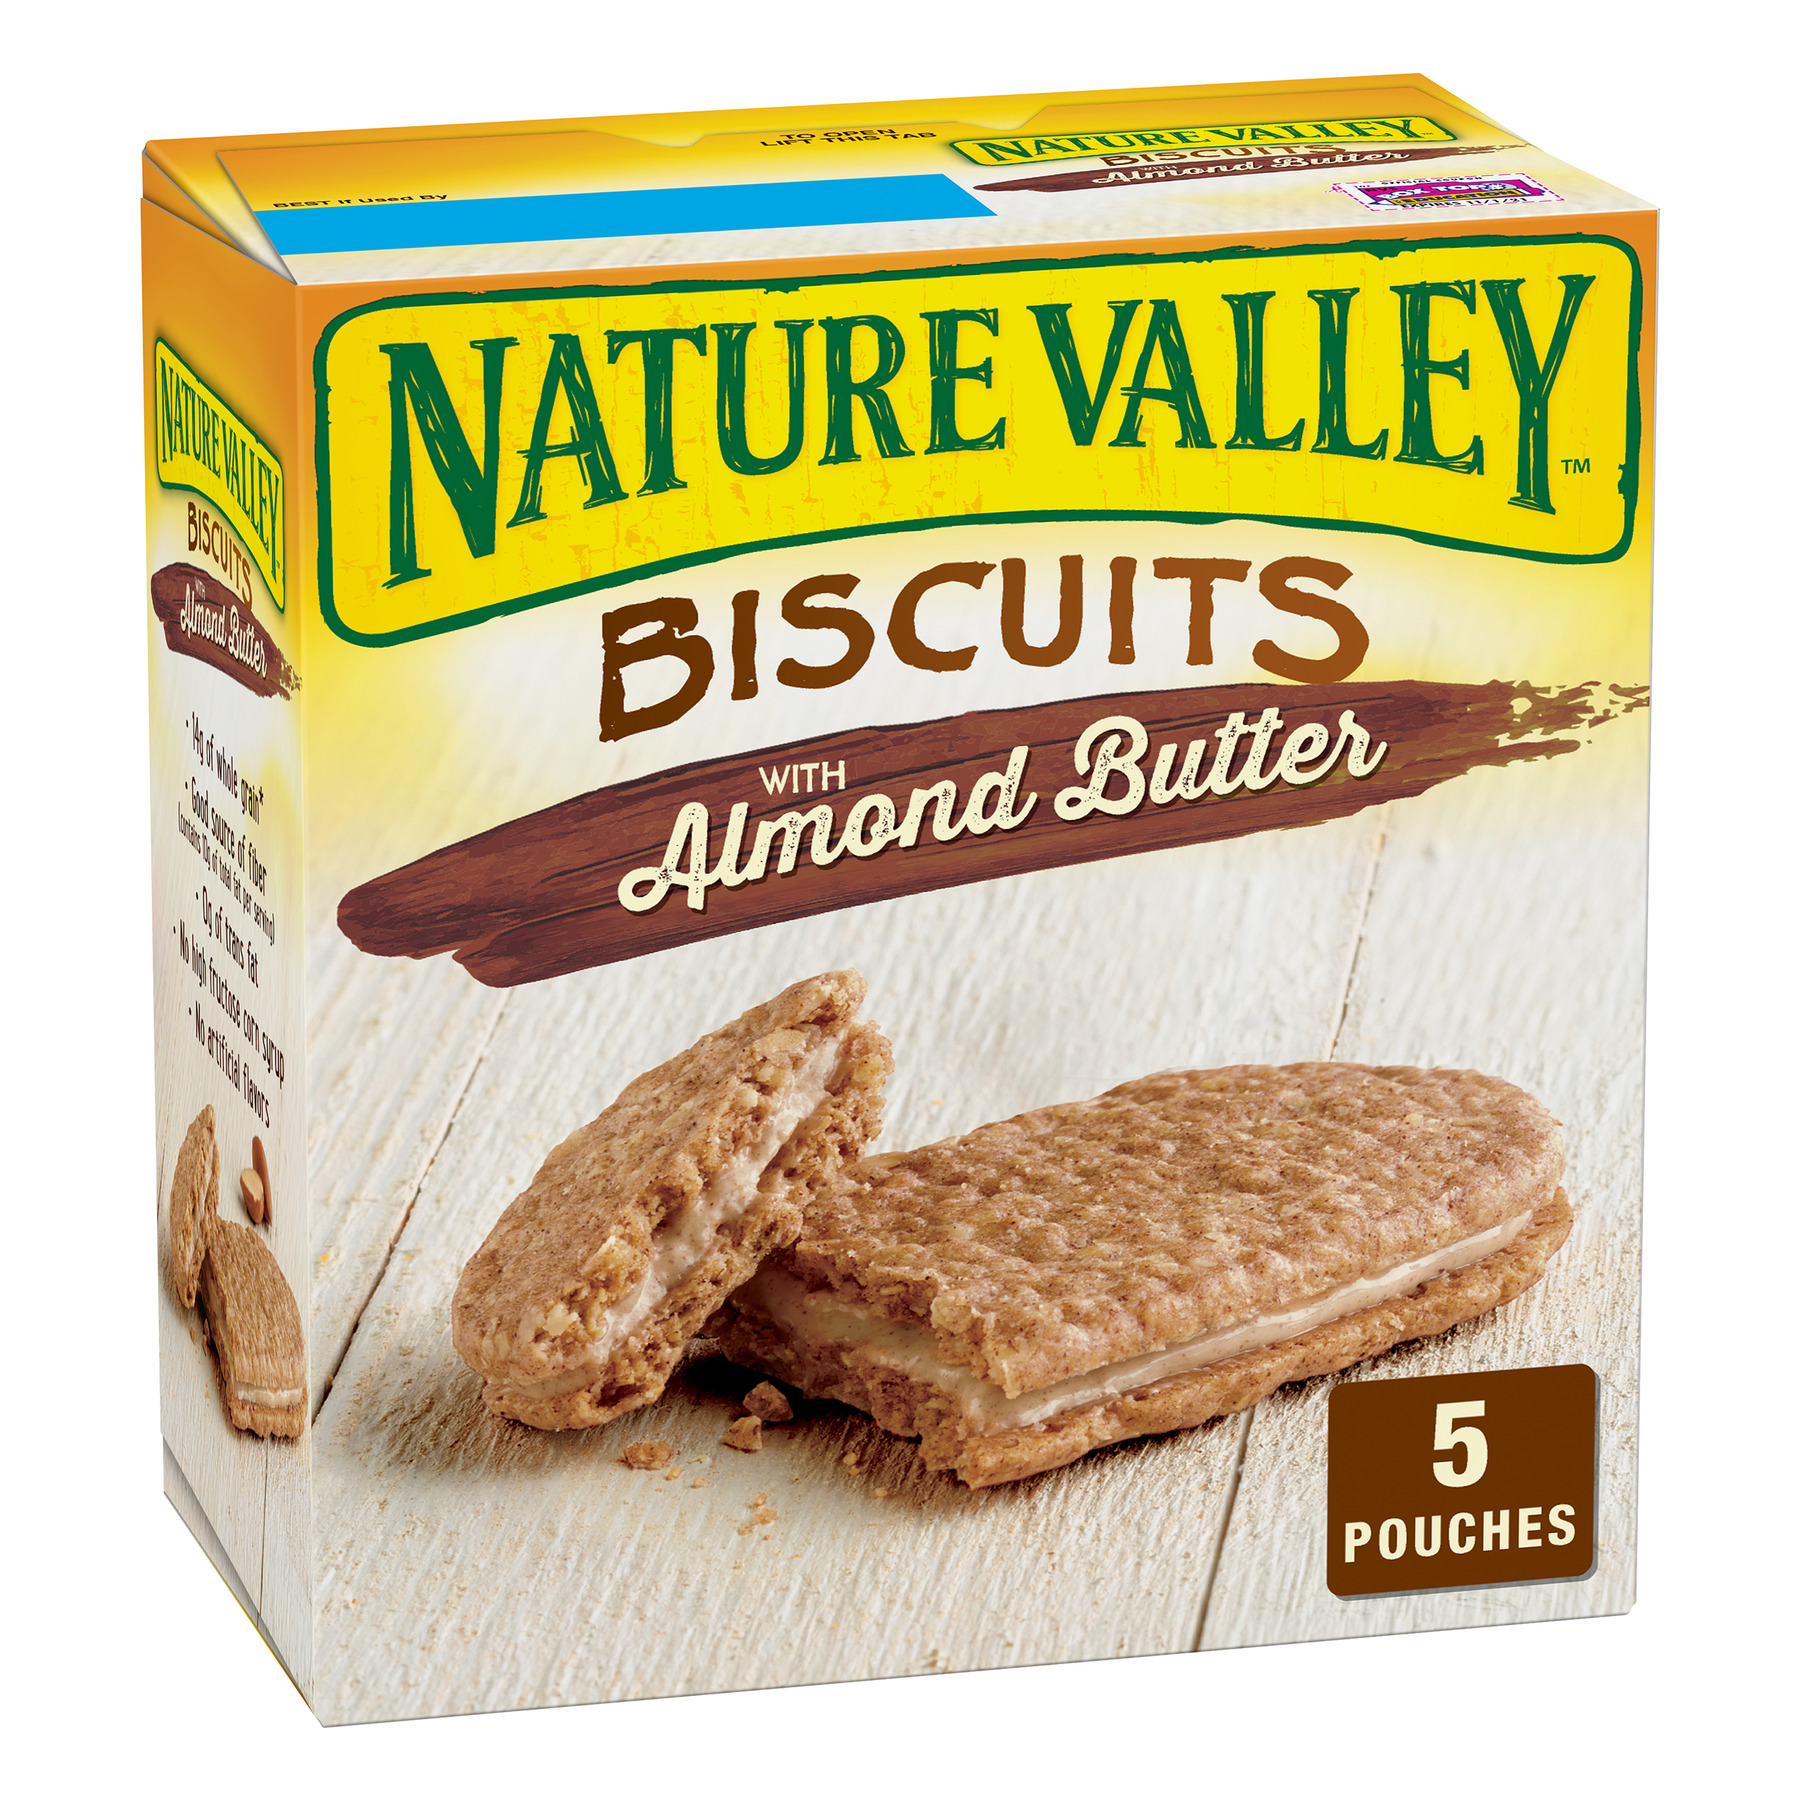 Nature valley biscuits walmart